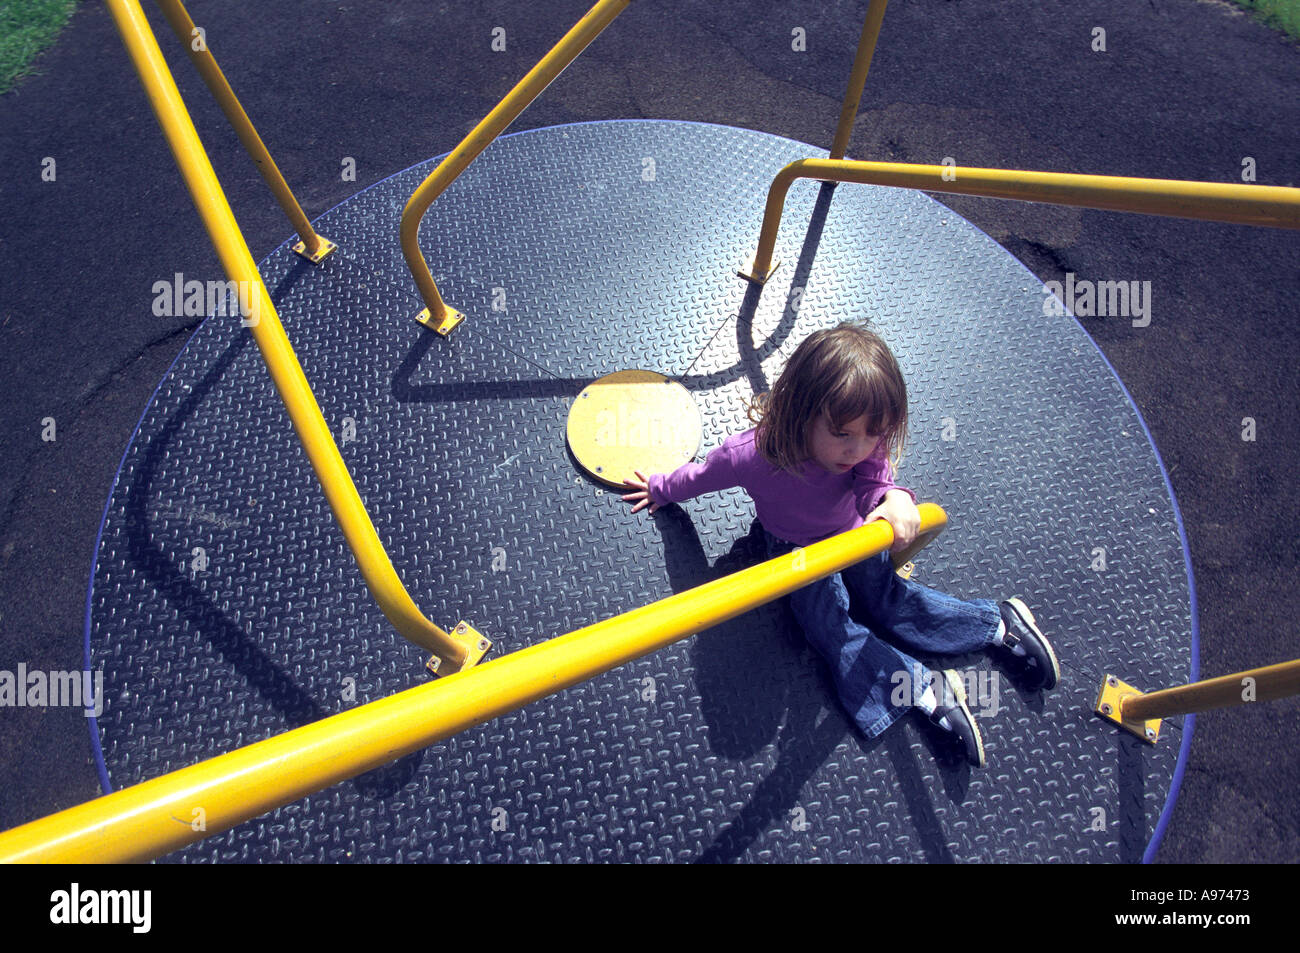 A small girl sits alone on a roundabout - Stock Image